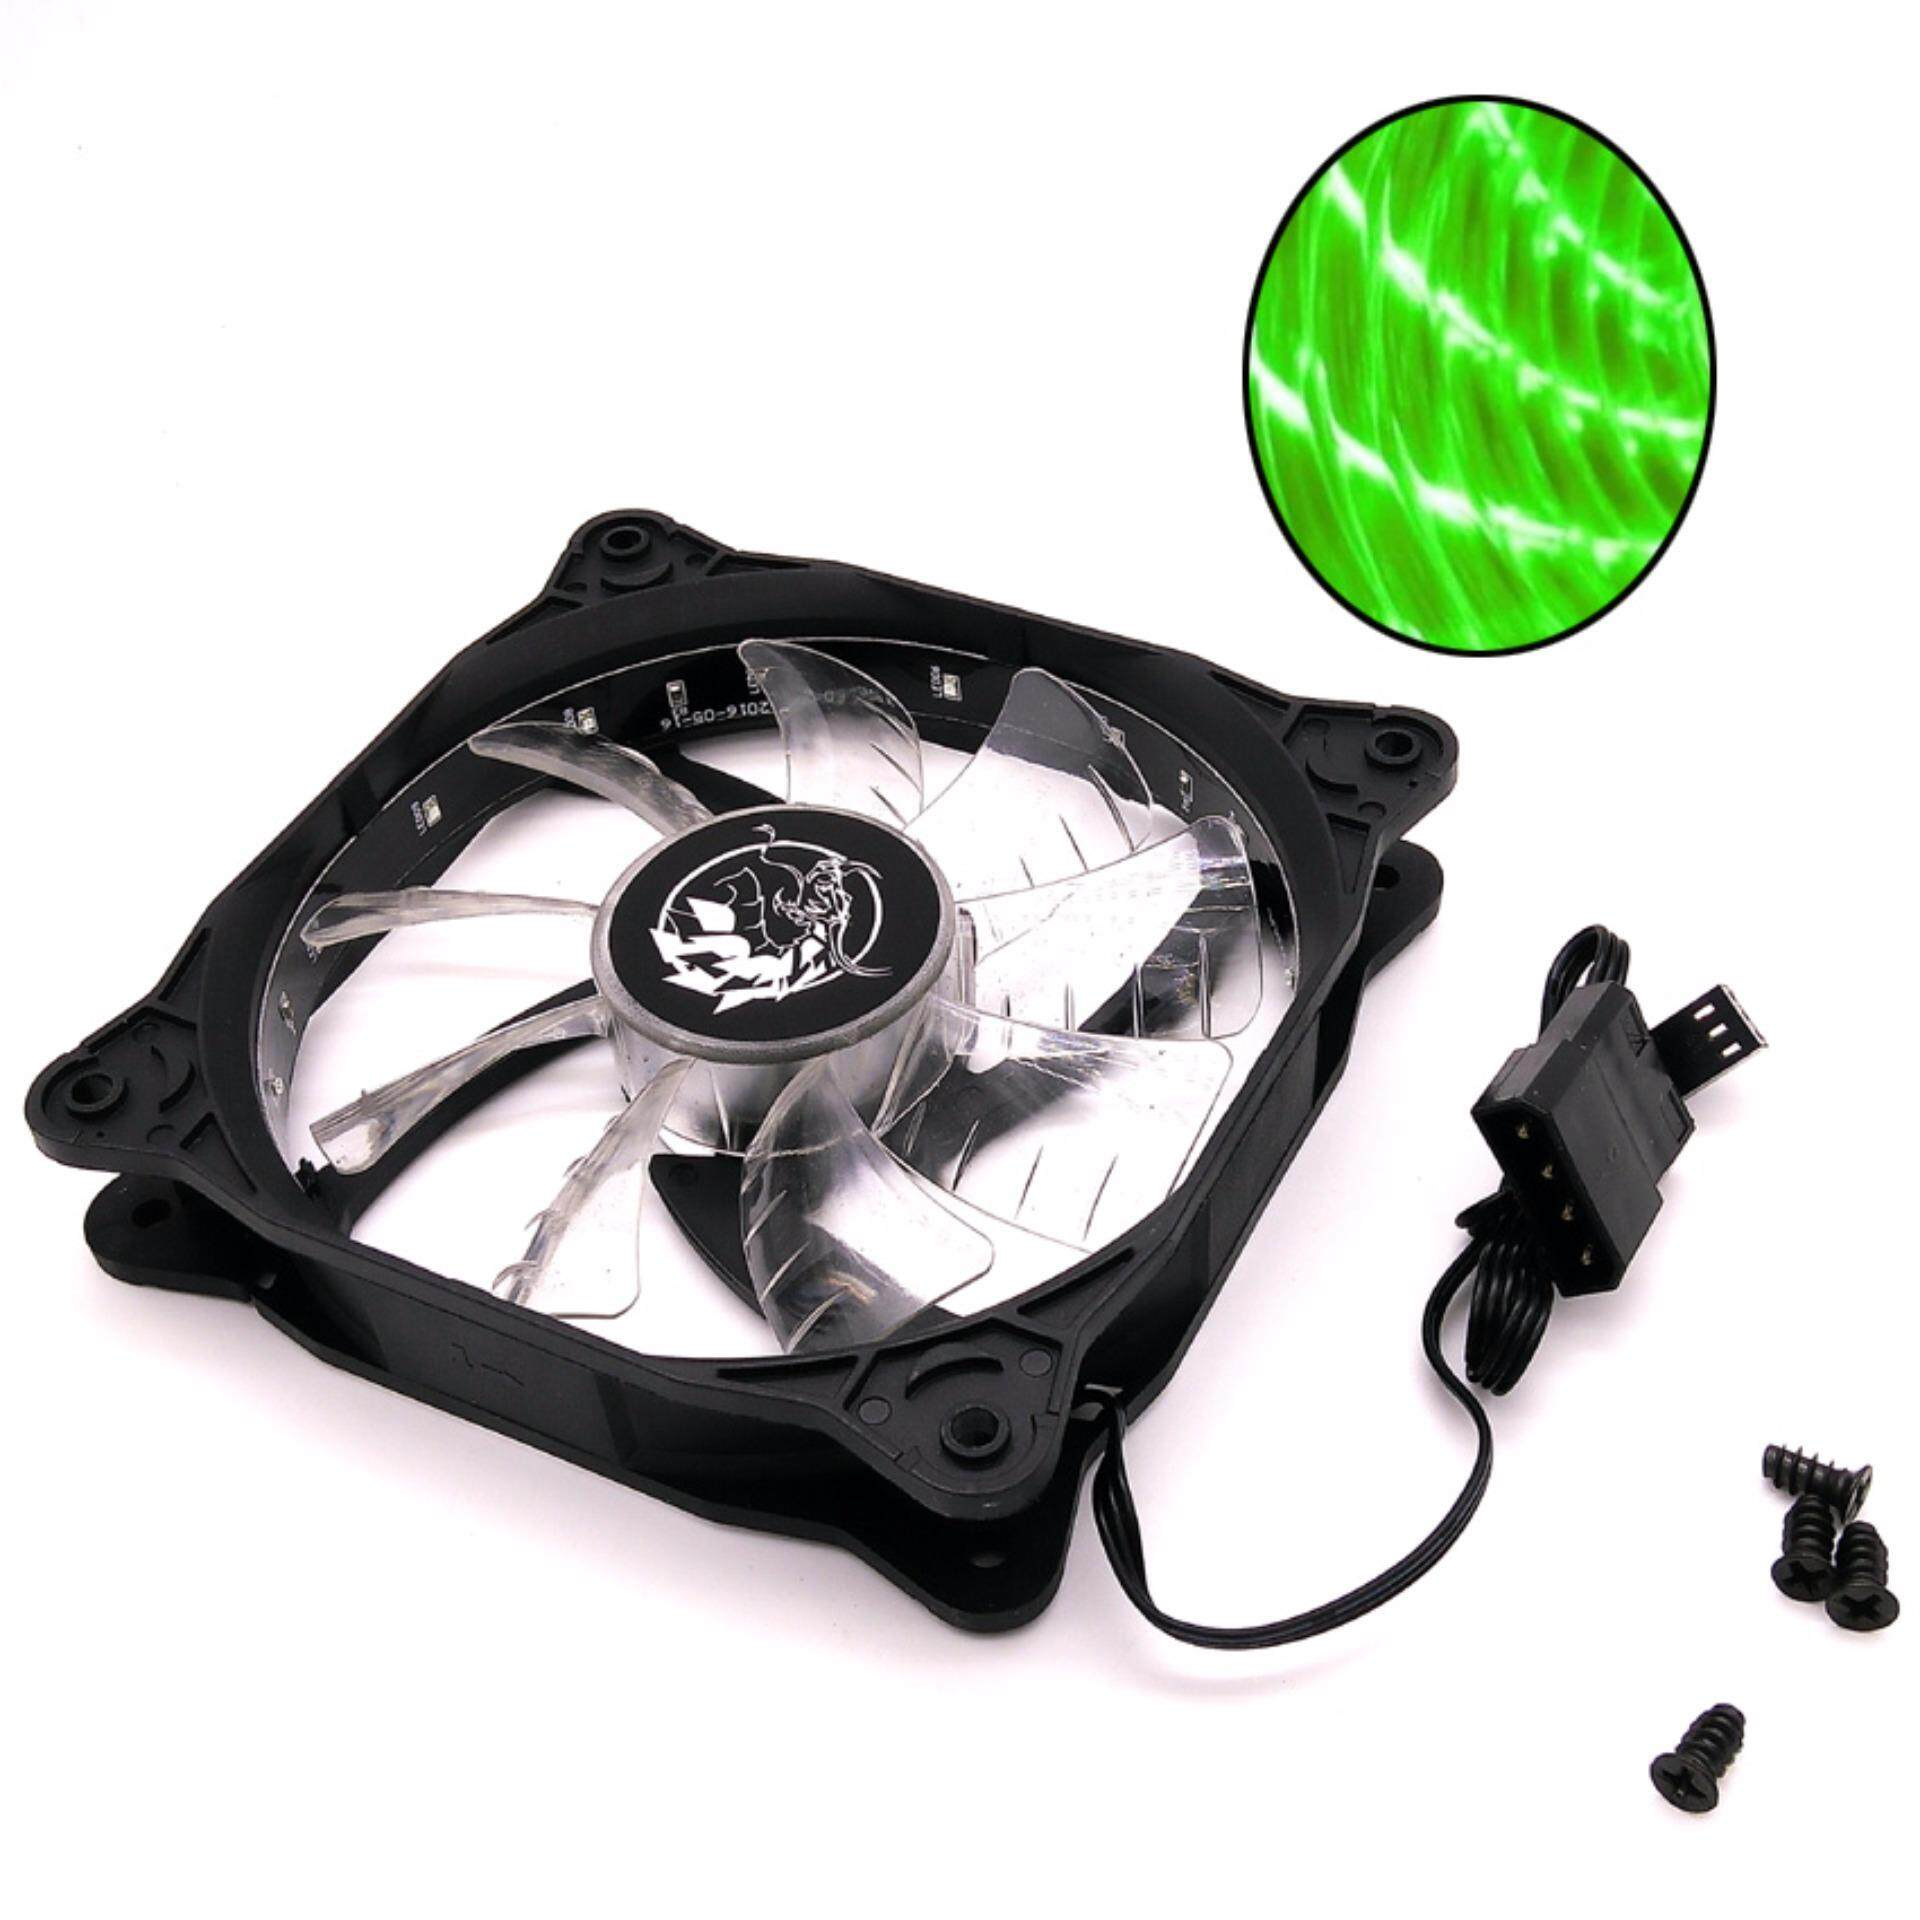 Imperion Supernova 120 FA-G12 Silent Edition 12CM LED Fan (Green)